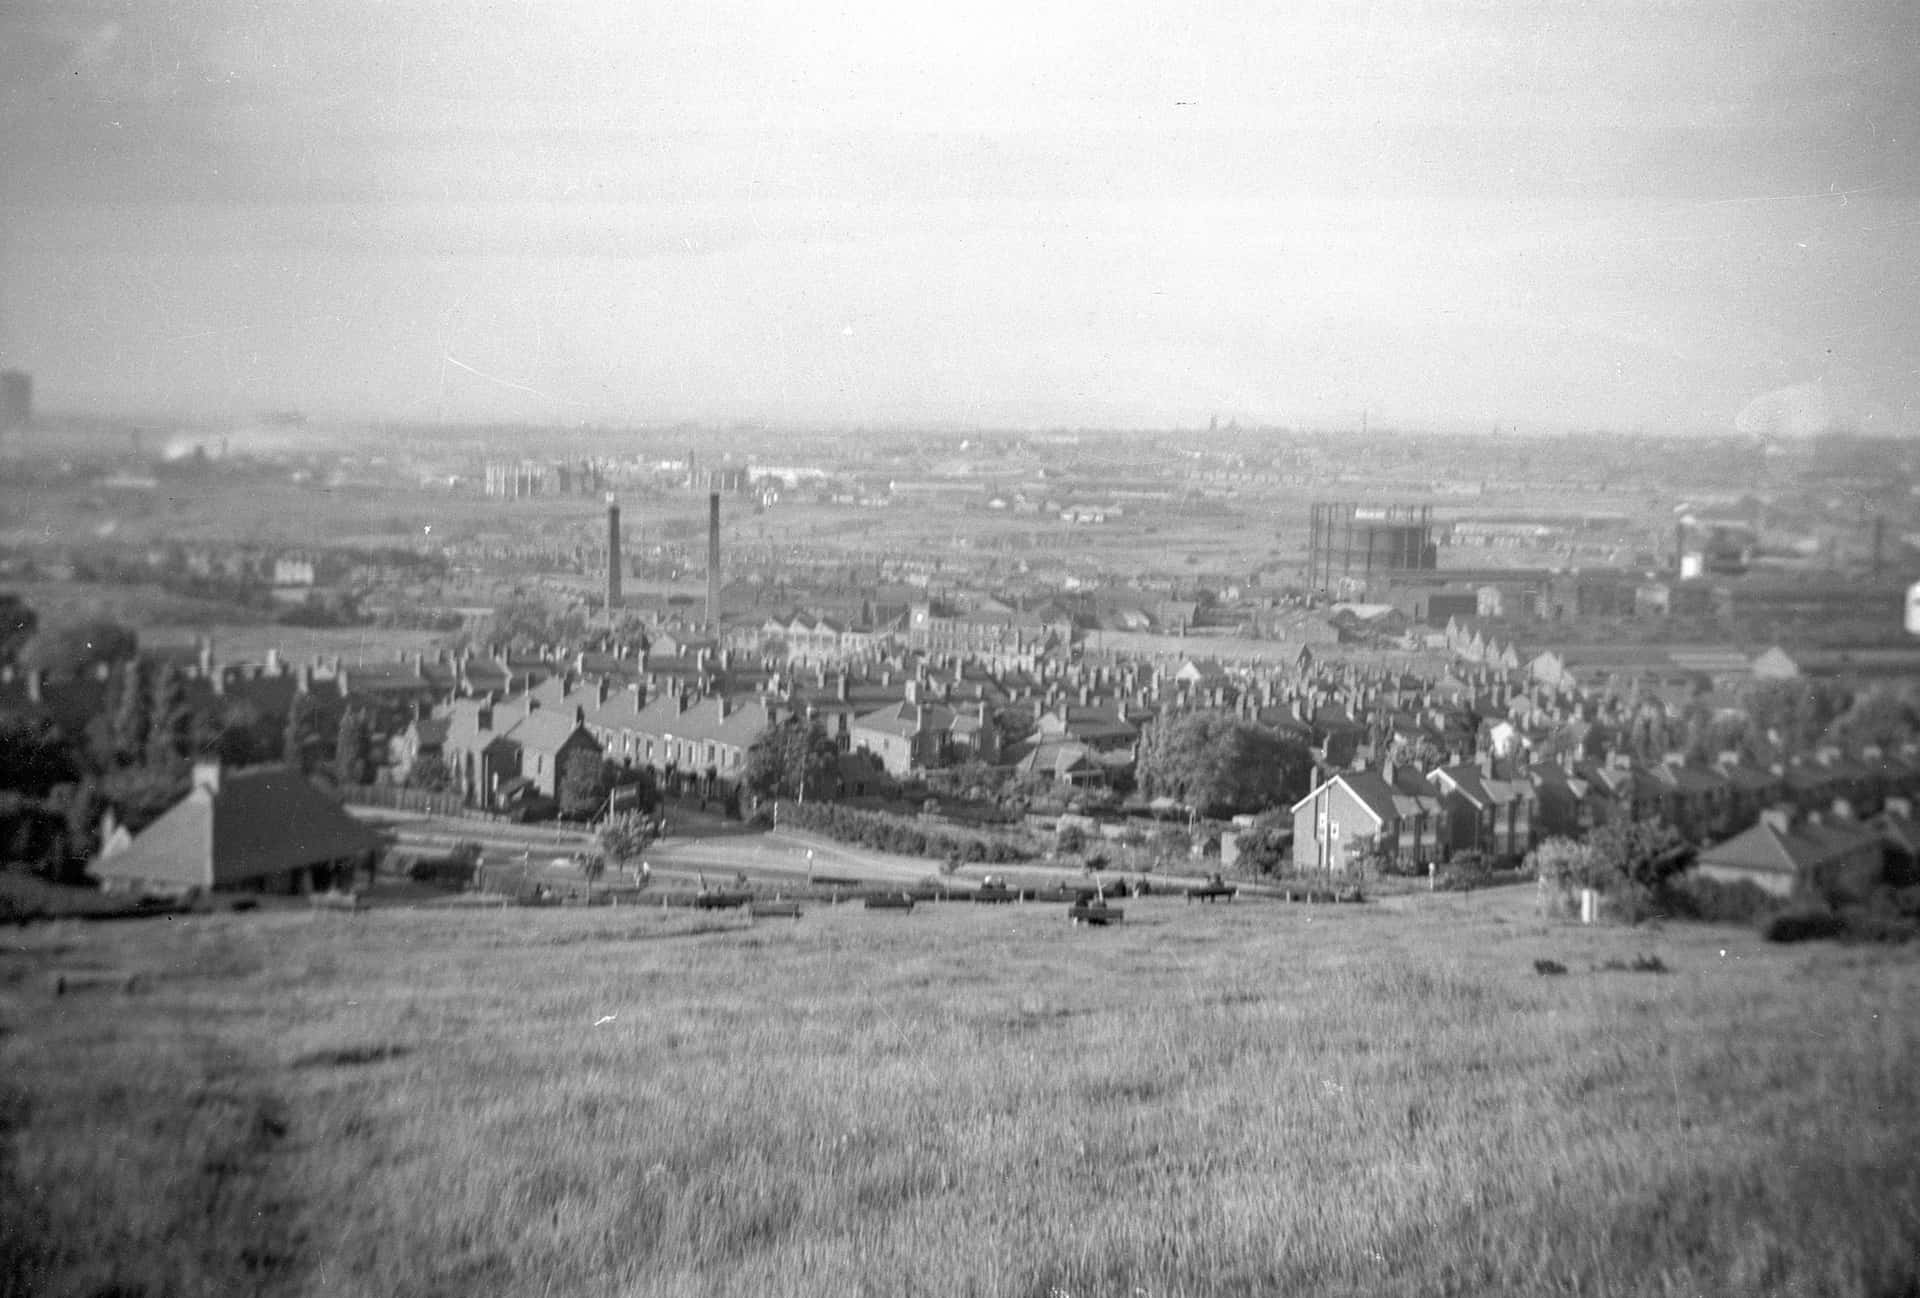 A view from Bury Hill Park taken in 1950. Looking out over Rounds Green, Brades Village and Oldbury. The 2 chimney stacks were the world-famous Brades Steel Works, makers of shovels, pick-axes, trowels, and many other items - some went world-wide.